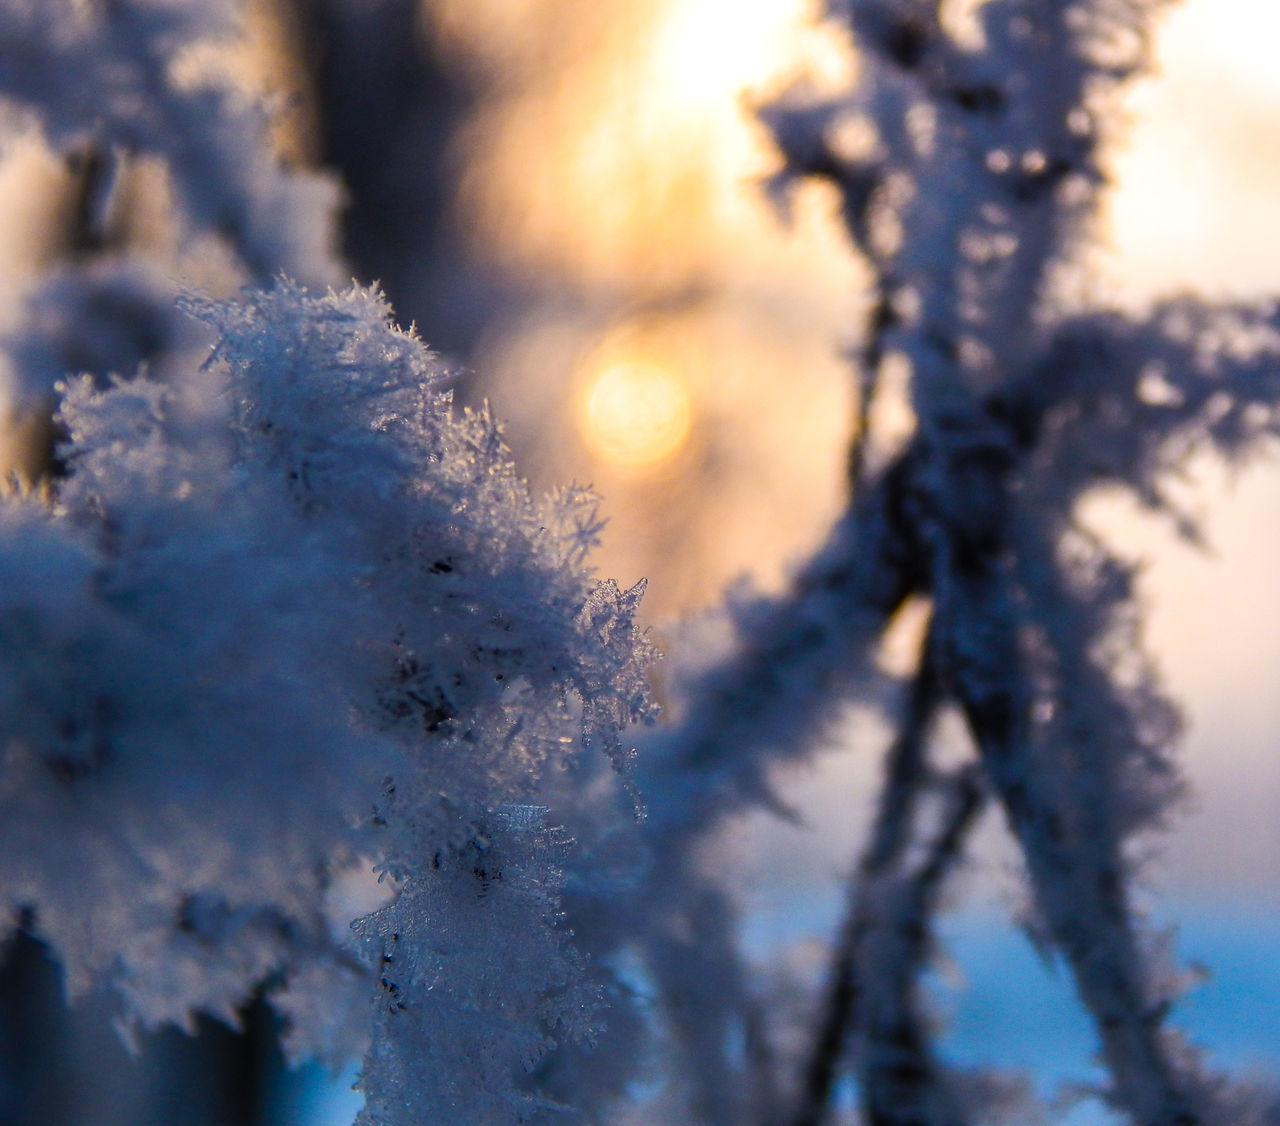 winter, nature, fragility, cold temperature, tree, beauty in nature, close-up, snow, frozen, weather, growth, no people, day, outdoors, branch, freshness, focus on foreground, flower, tranquility, sky